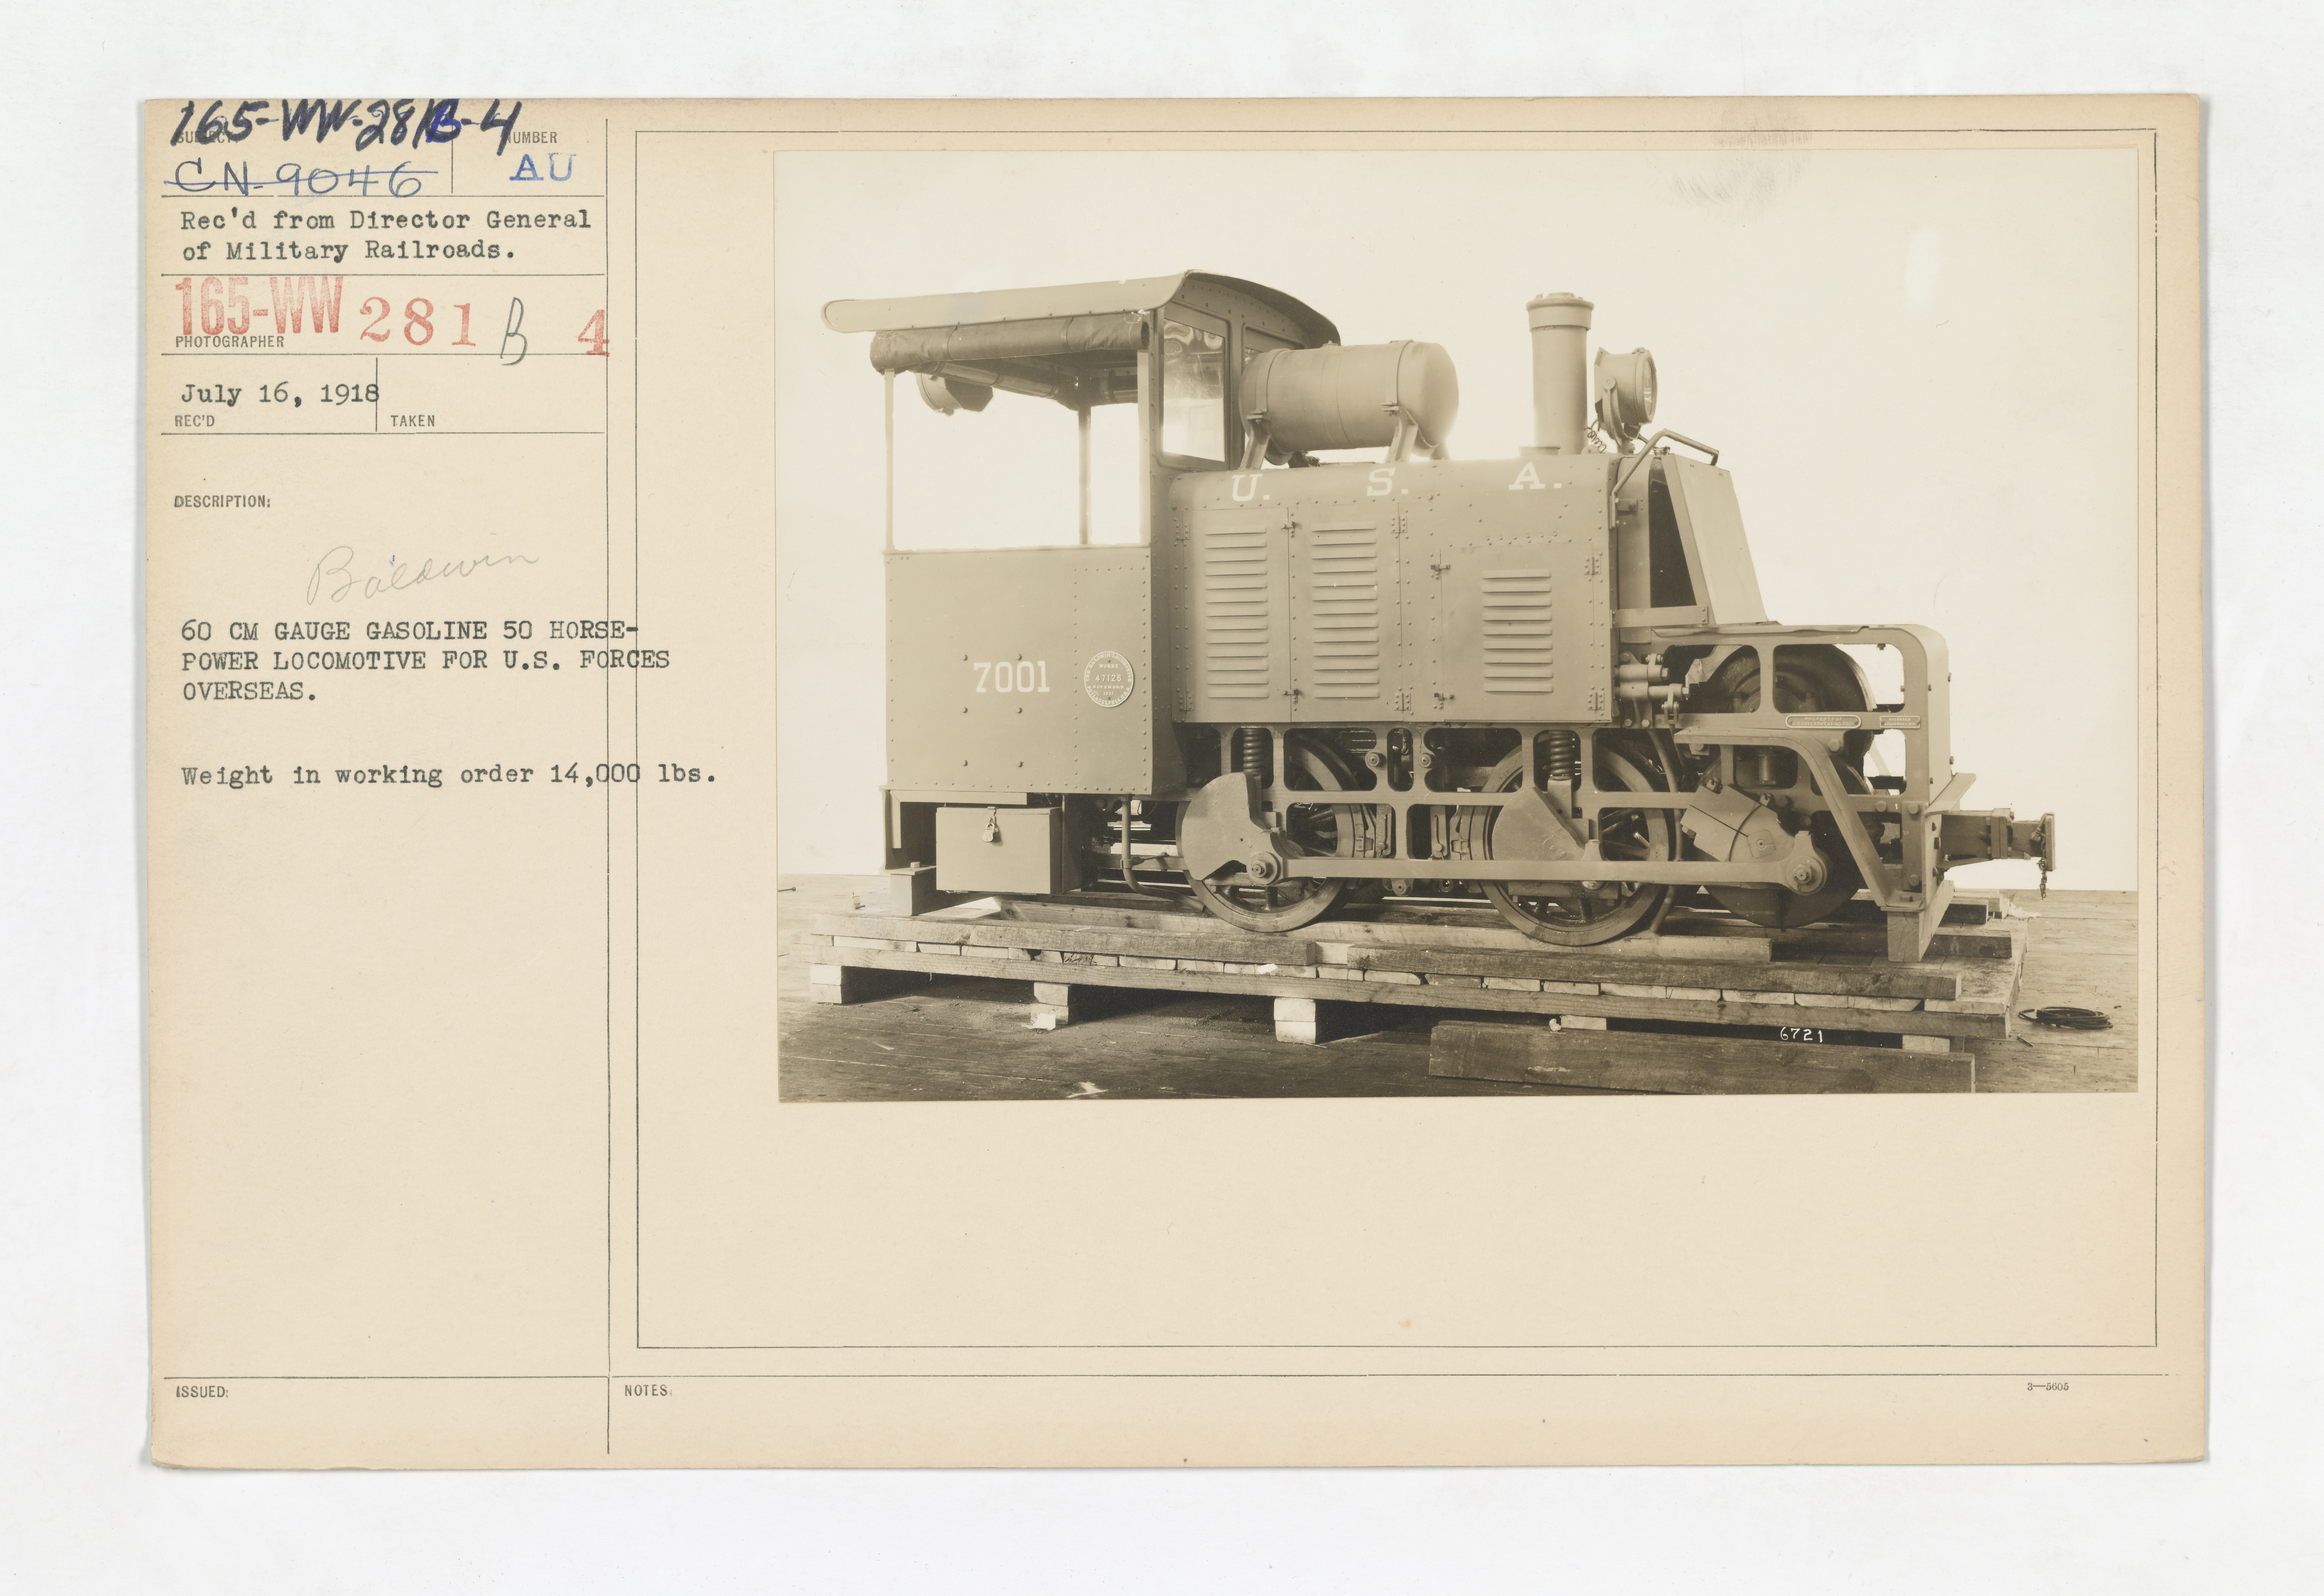 Military Administration - Transportation - Rail - 60 CM GAUGE GASOLINE 50 HORSE-POWER LOCOMOTIVE FOR U.S. FORCES OVERSEAS. Weight in working order 14,000 lbs